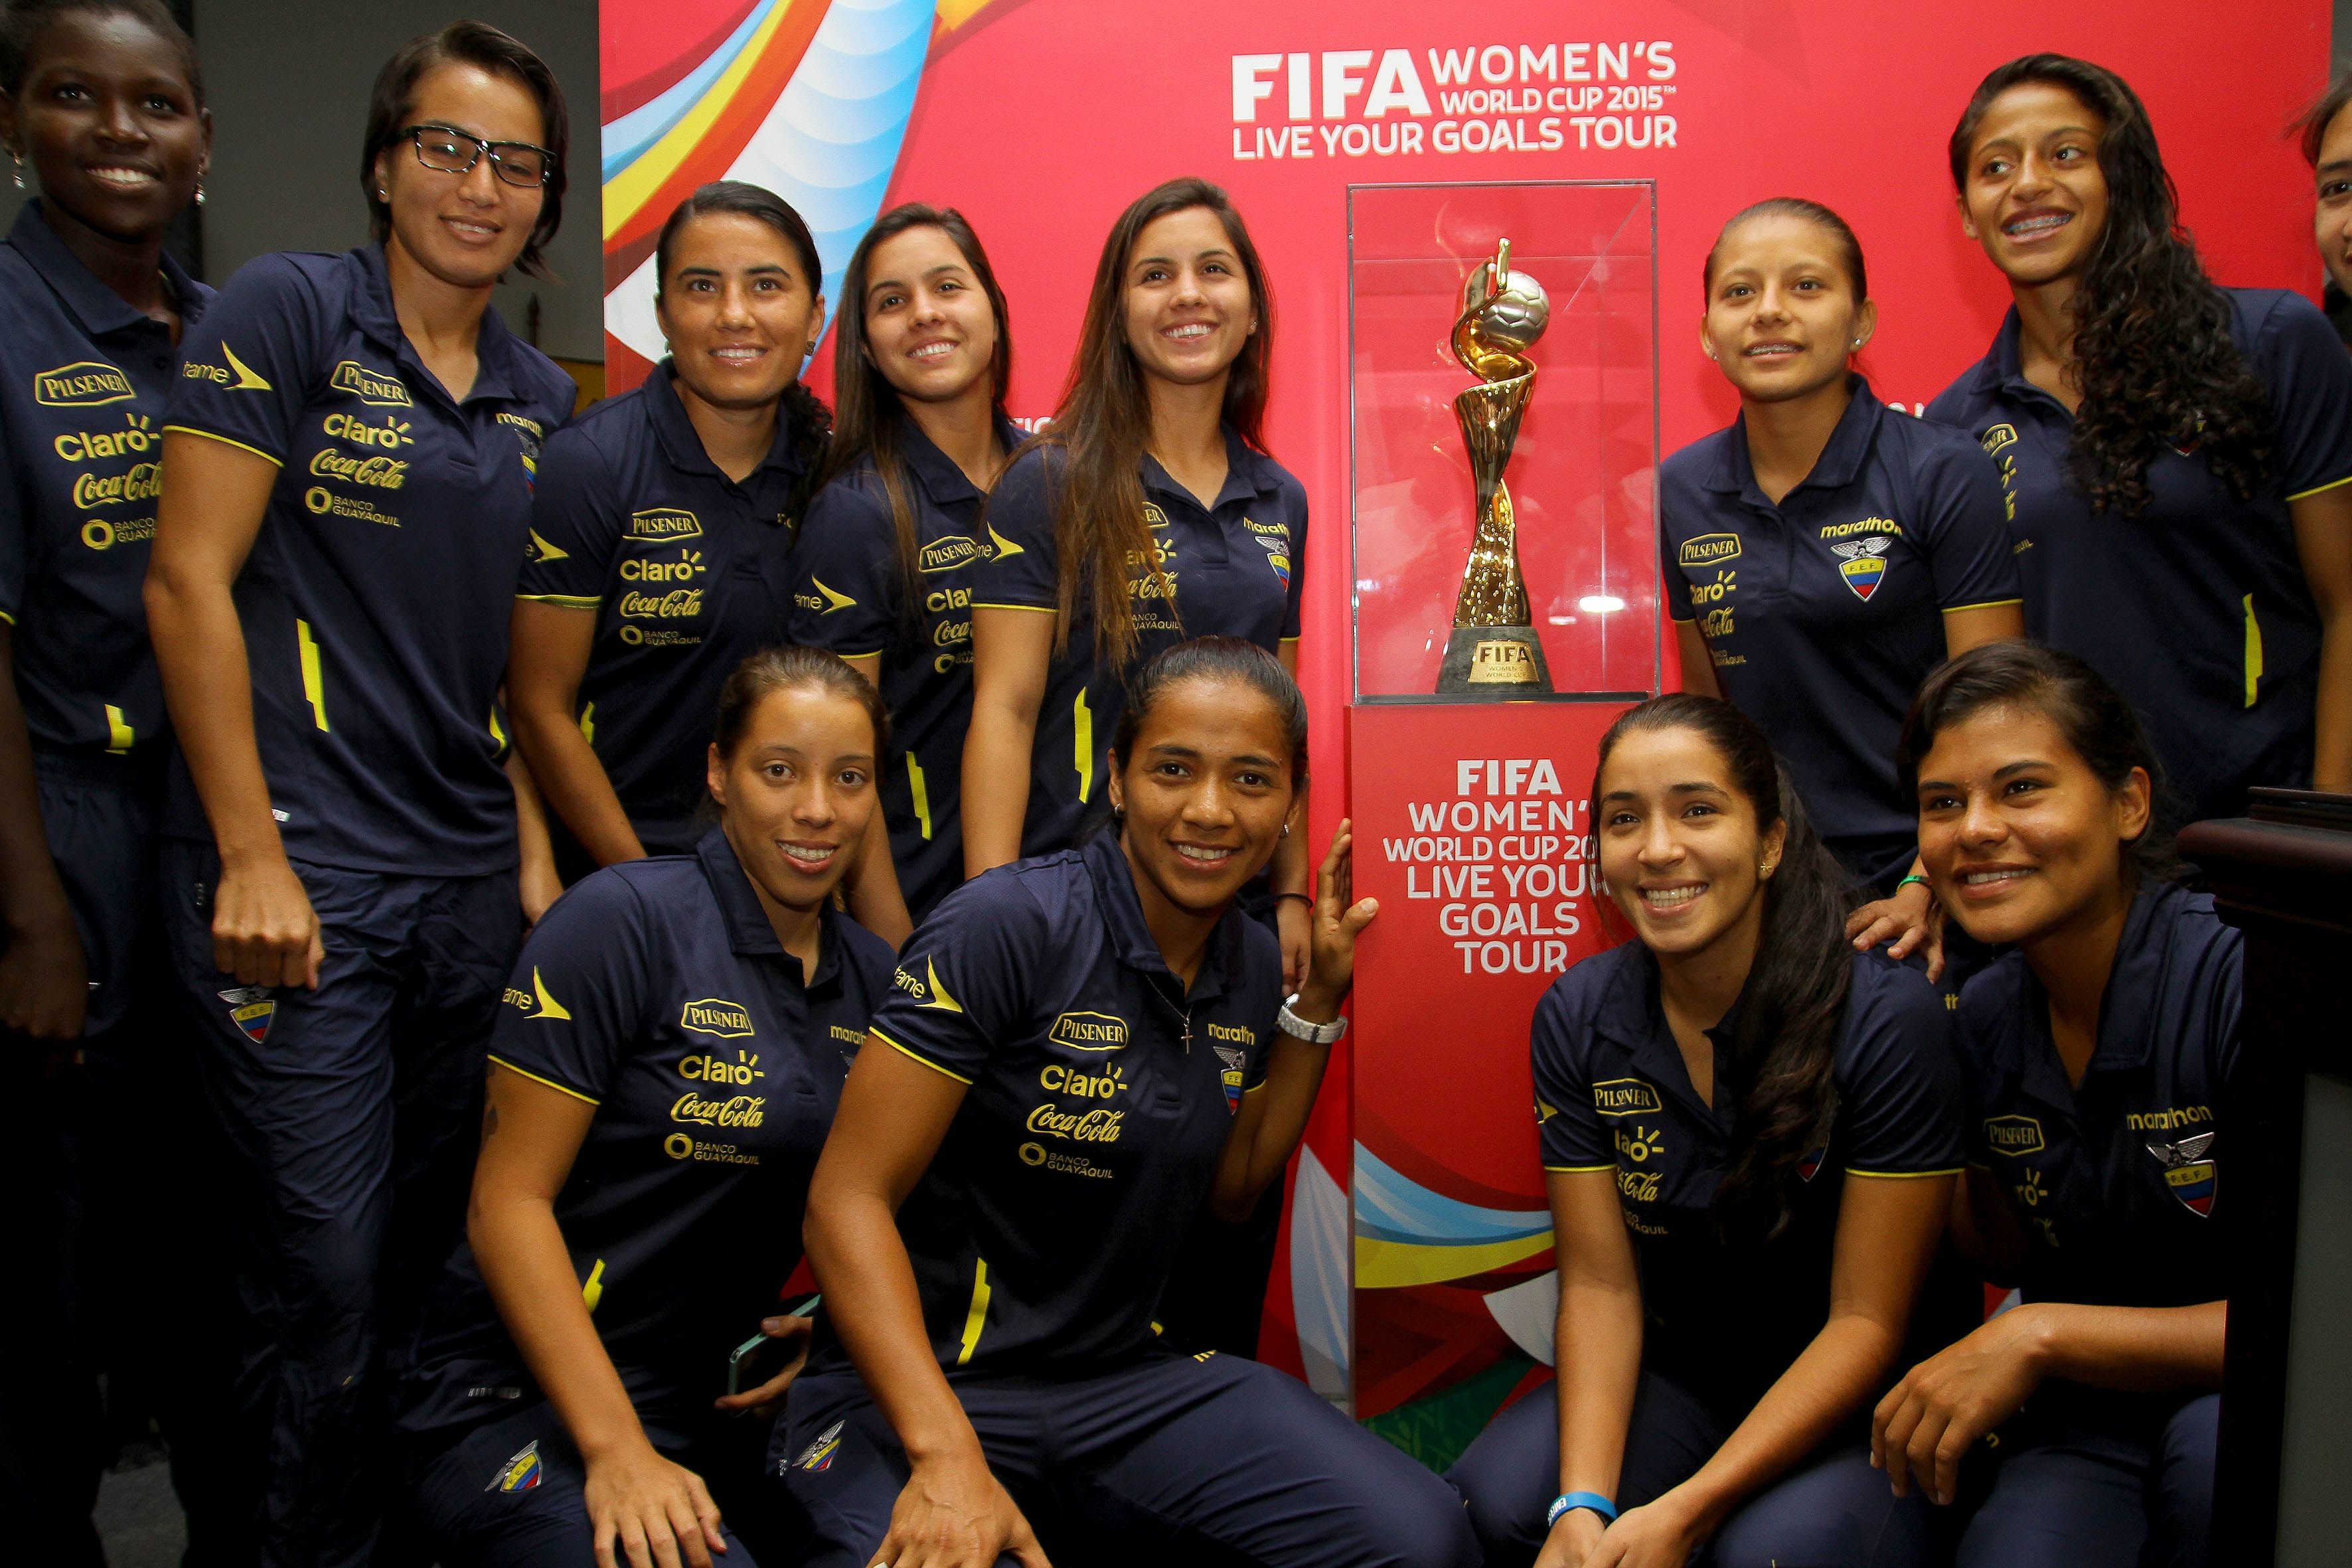 The women's world cup trophy